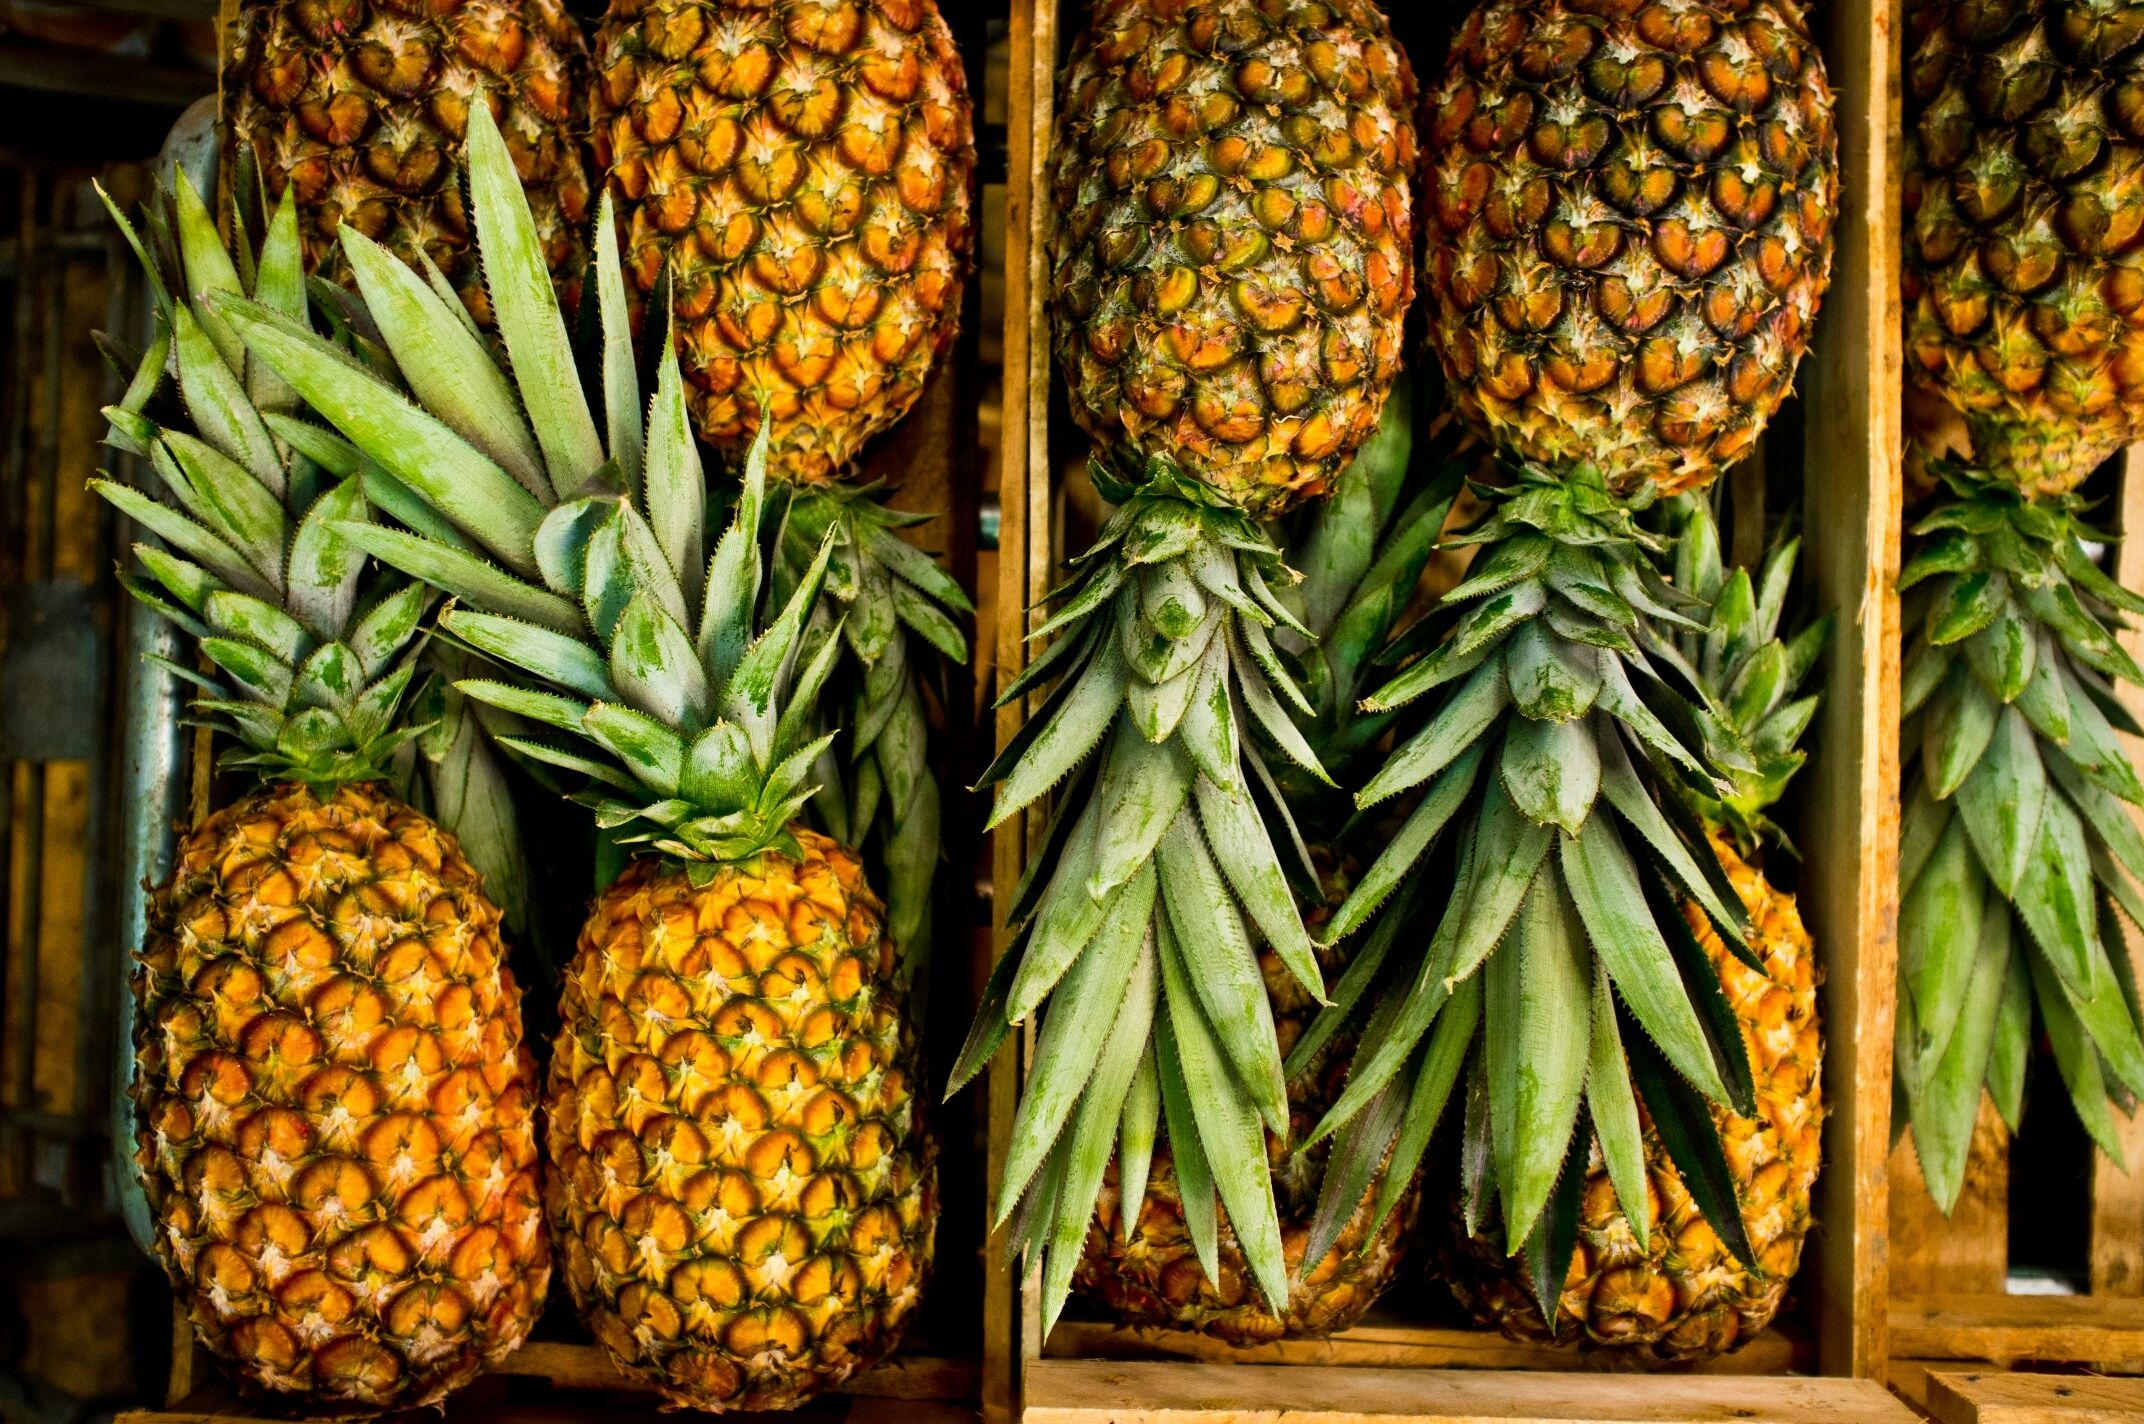 Pineapple Storage And Selection